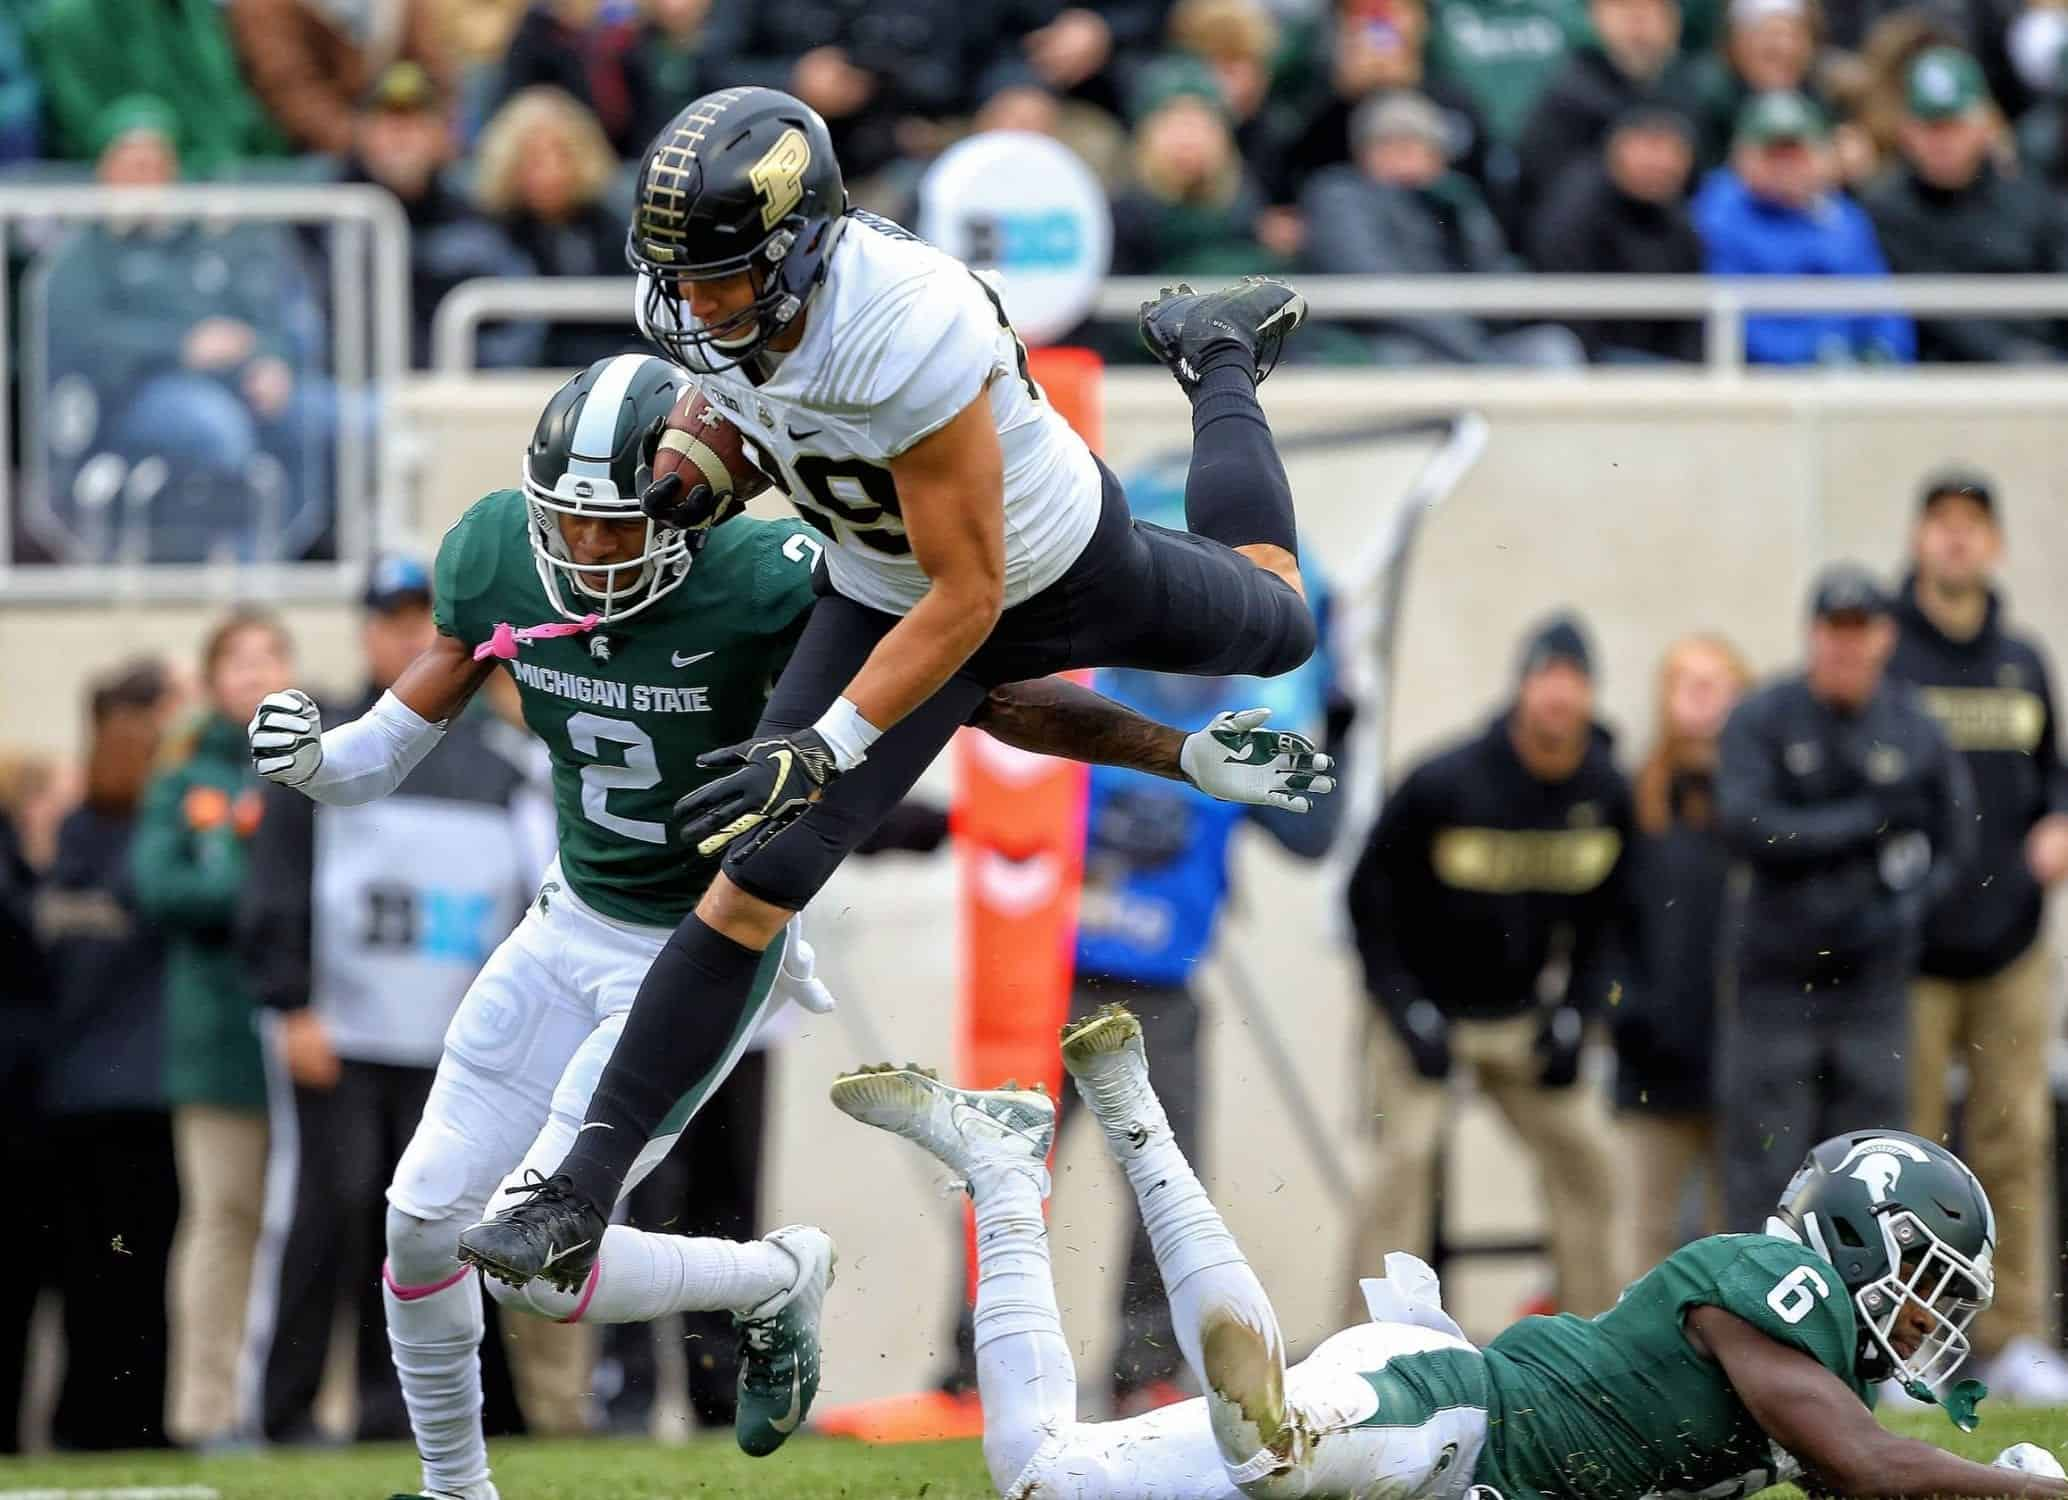 Best Te Fantasy 2020 2020 NFL Draft Prospect Preview: Brycen Hopkins, TE, Purdue